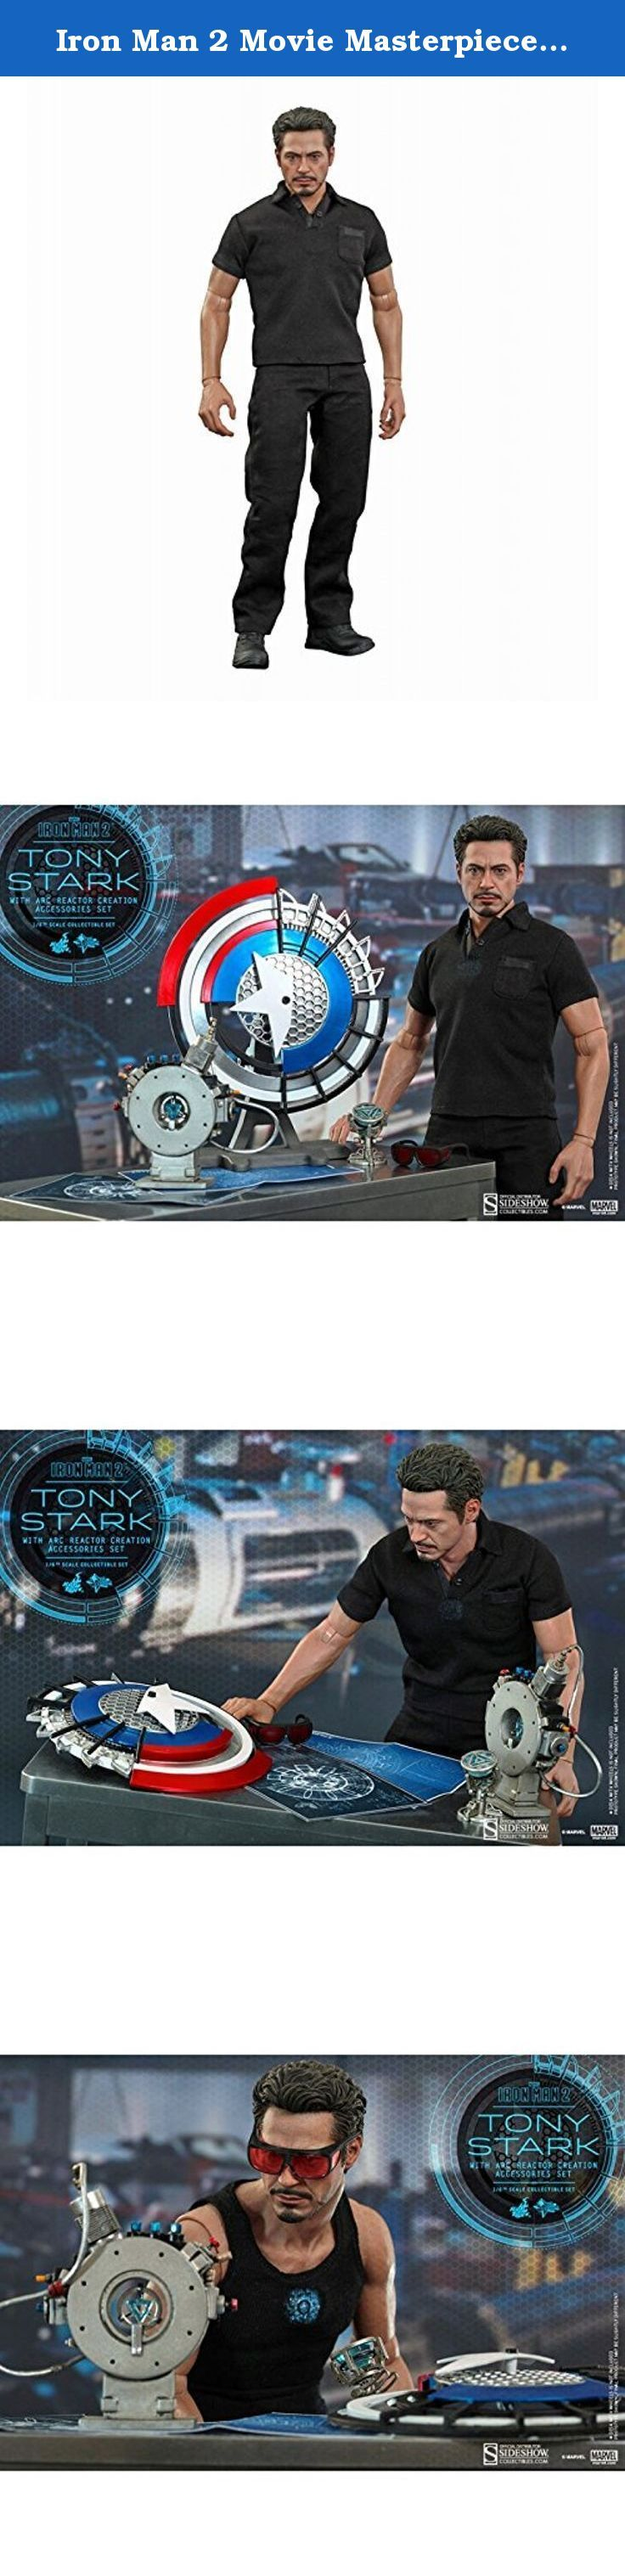 Iron Man 2 Movie Masterpiece Tony Stark with Arc Reactor Creation Accessories Set 1:6 Collectible Figure. n Iron Man 2, Tony Stark was being slowly poisoned to death by the palladium arc reactor in his body, but with the help of the information left by Howard Stark, Tony was able to create a new element for use in a new Arc Reactor. The scene greatly displayed Tony Starks immense intelligence when he re-discovered and created a new element by using a particle accelerator.Hot Toys is...